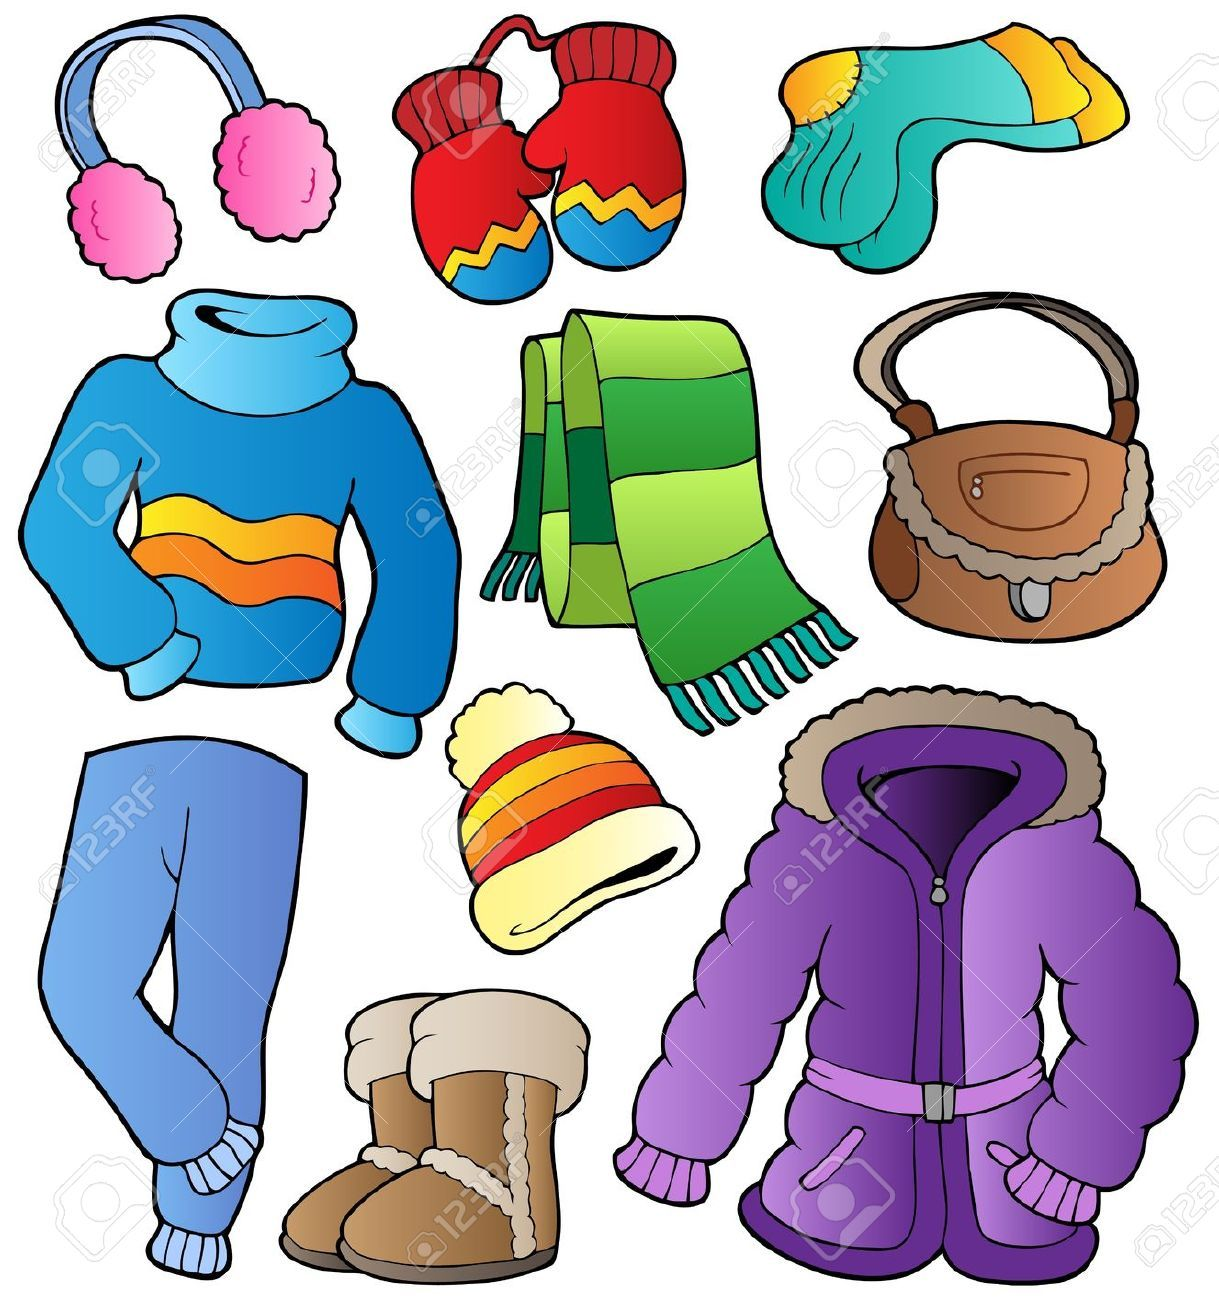 Wearing warm clothes clipart transparent library children in winter clothes coloring pages - Hľadať Googlom ... transparent library